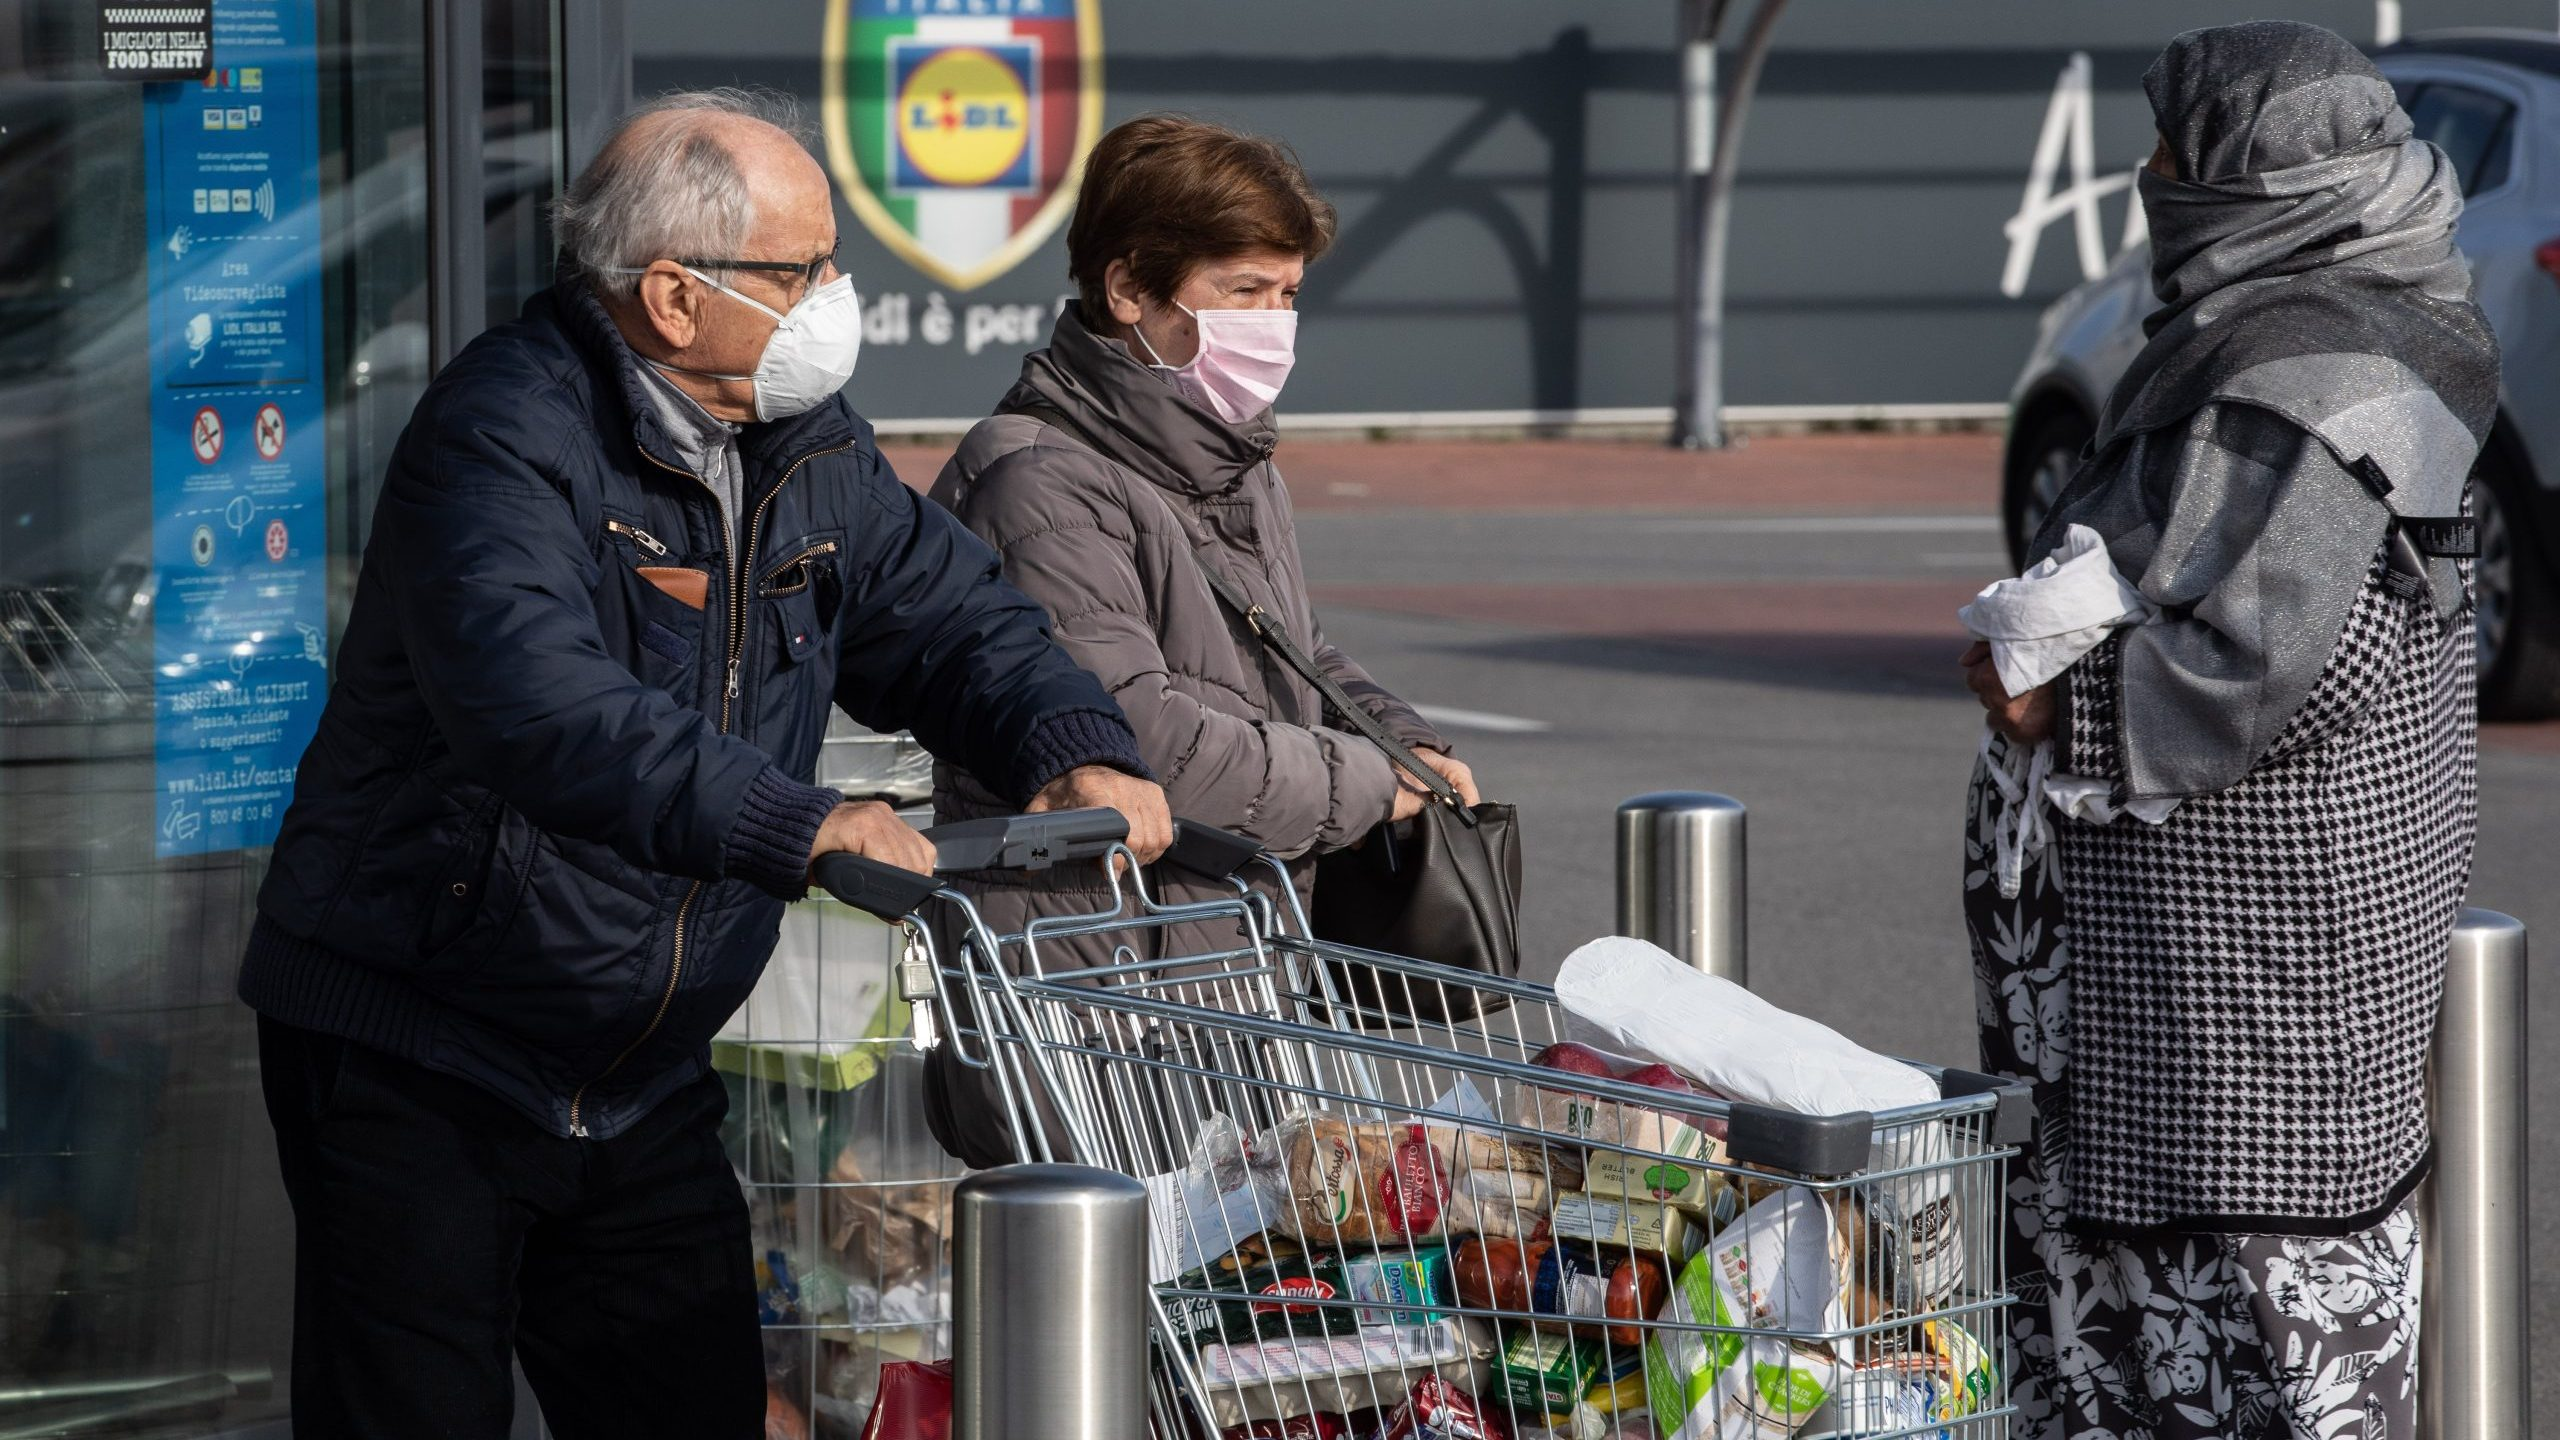 A couple wearing respiratory masks push a trolley loaded with foodstuffs after having been given a 10-minute access to shop on February 23, 2020 in Casalpusterlengo, south-west Milan, Italy. (Credit: Emanuele Cremaschi/Getty Images)